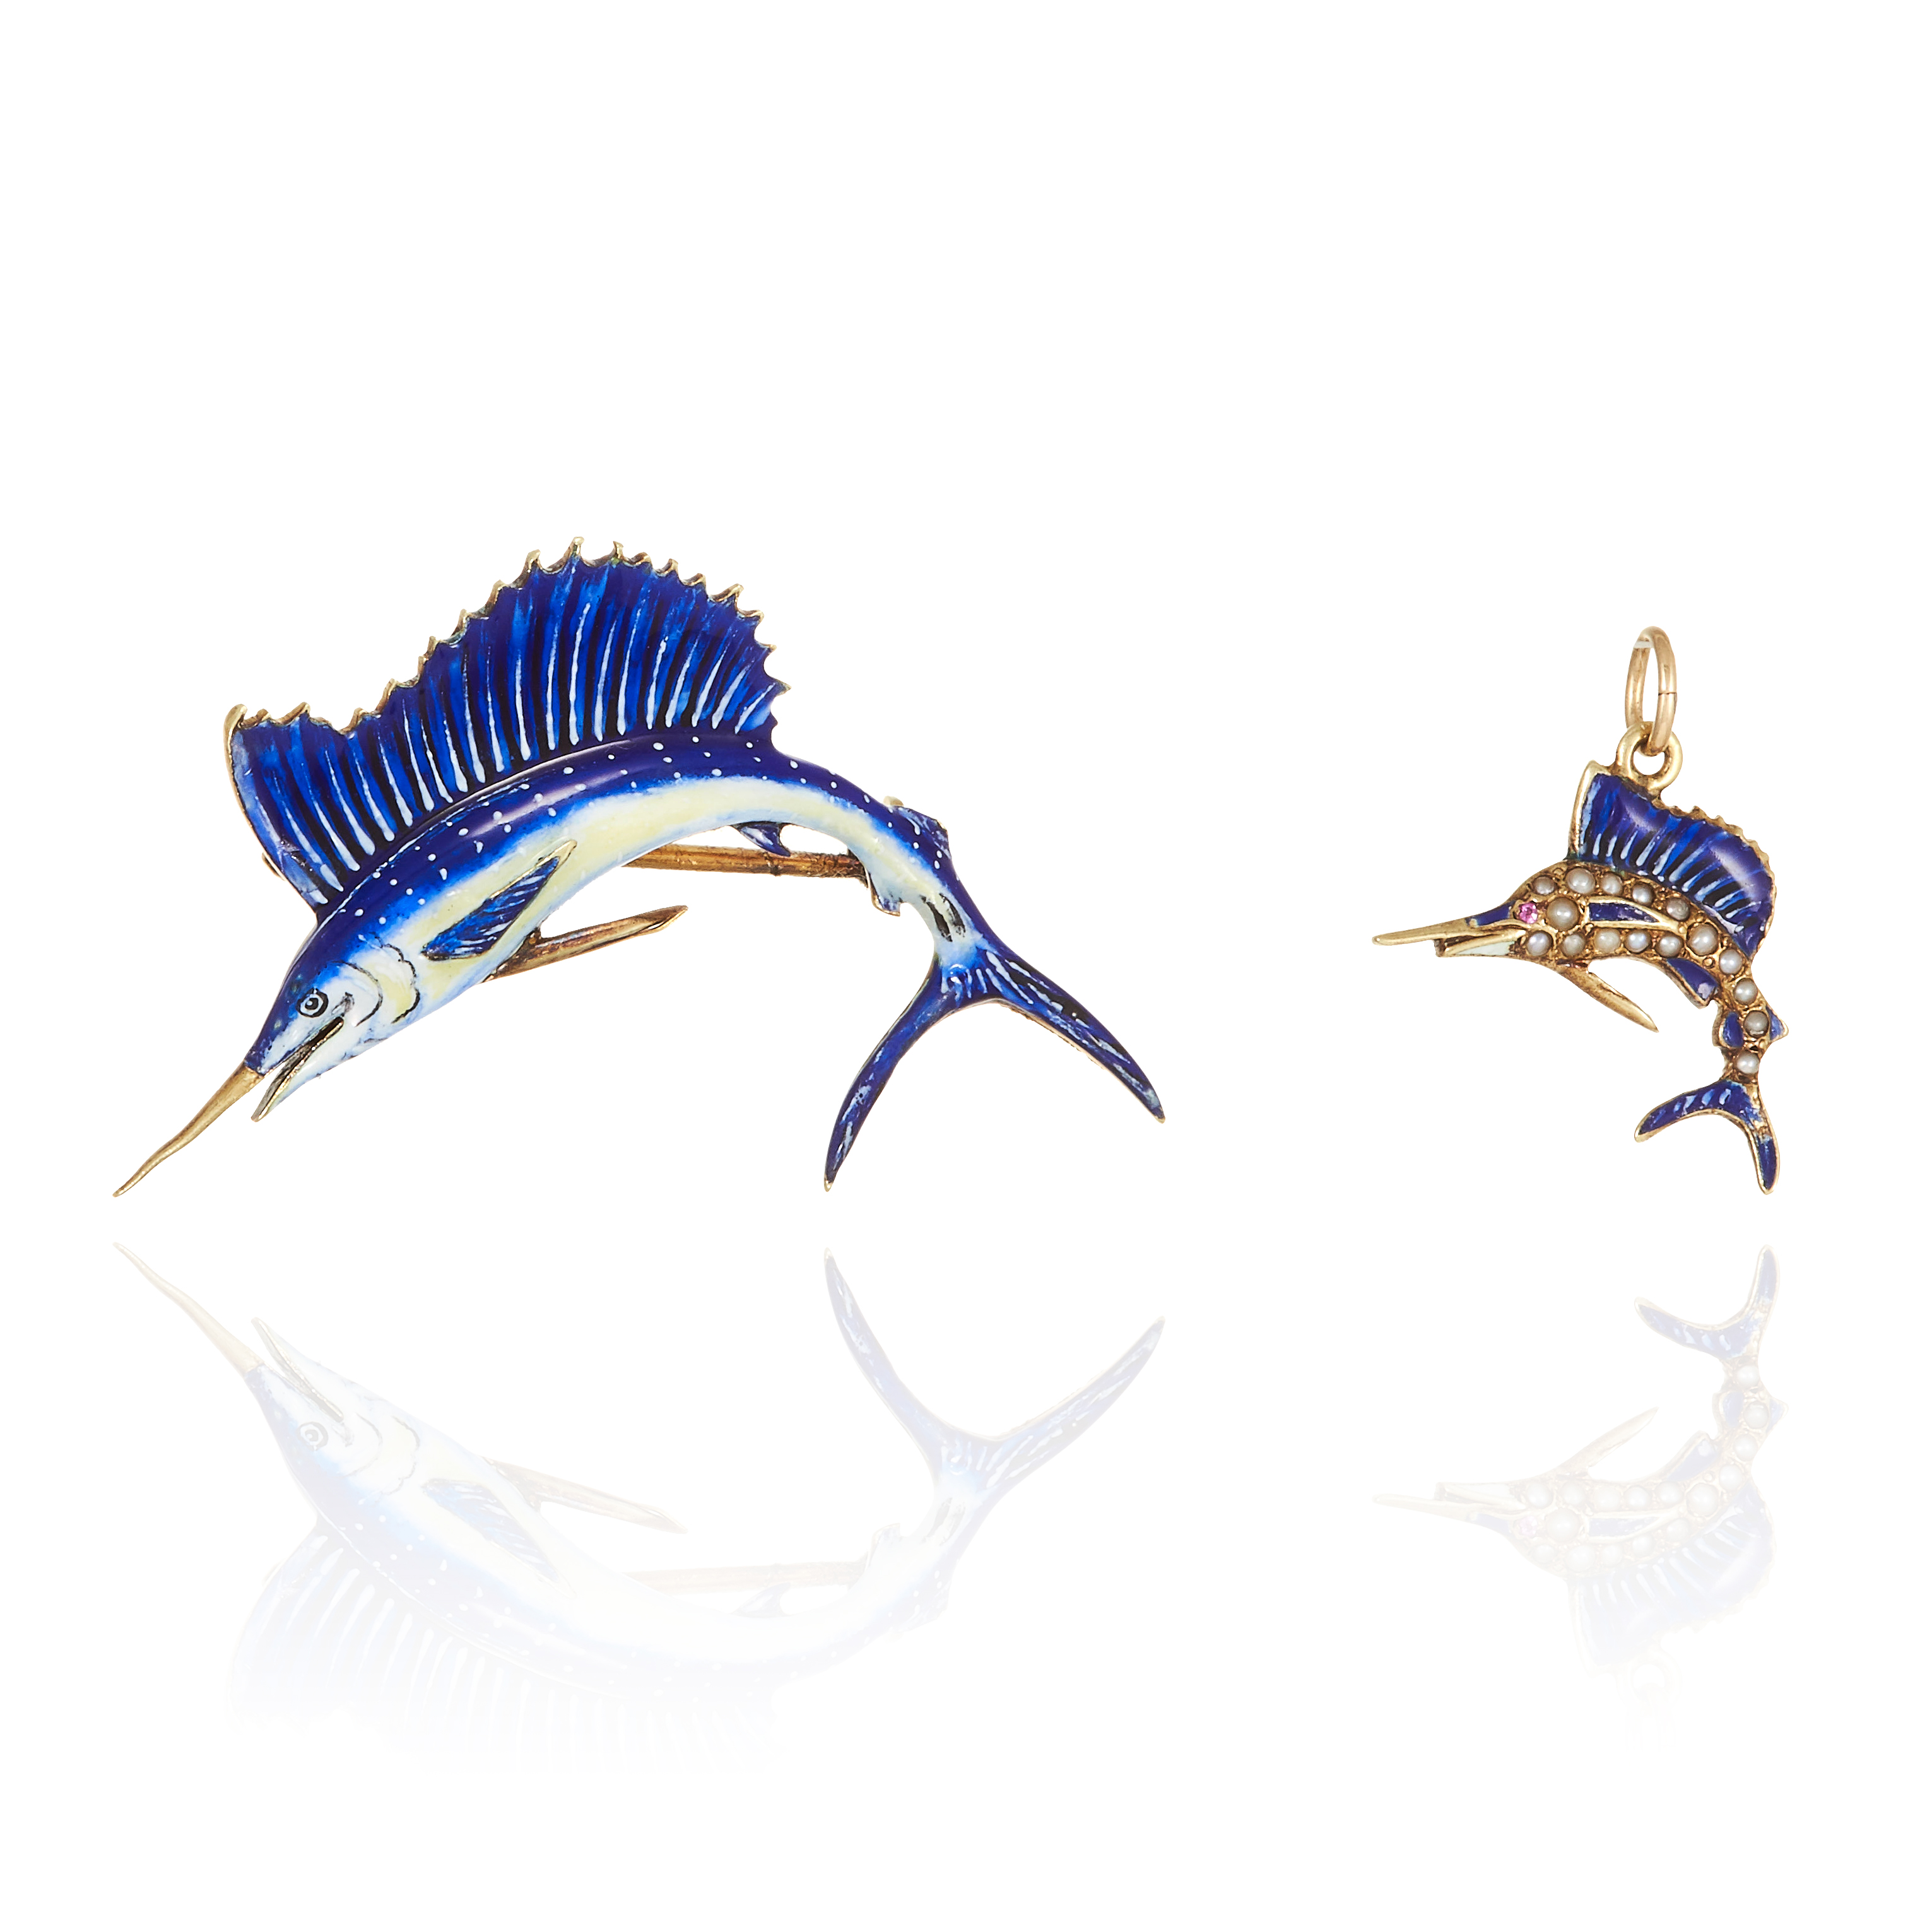 AN ANTIQUE ENAMEL SAILFISH BROOCH AND PENDANT in high carat yellow gold, each designed as a